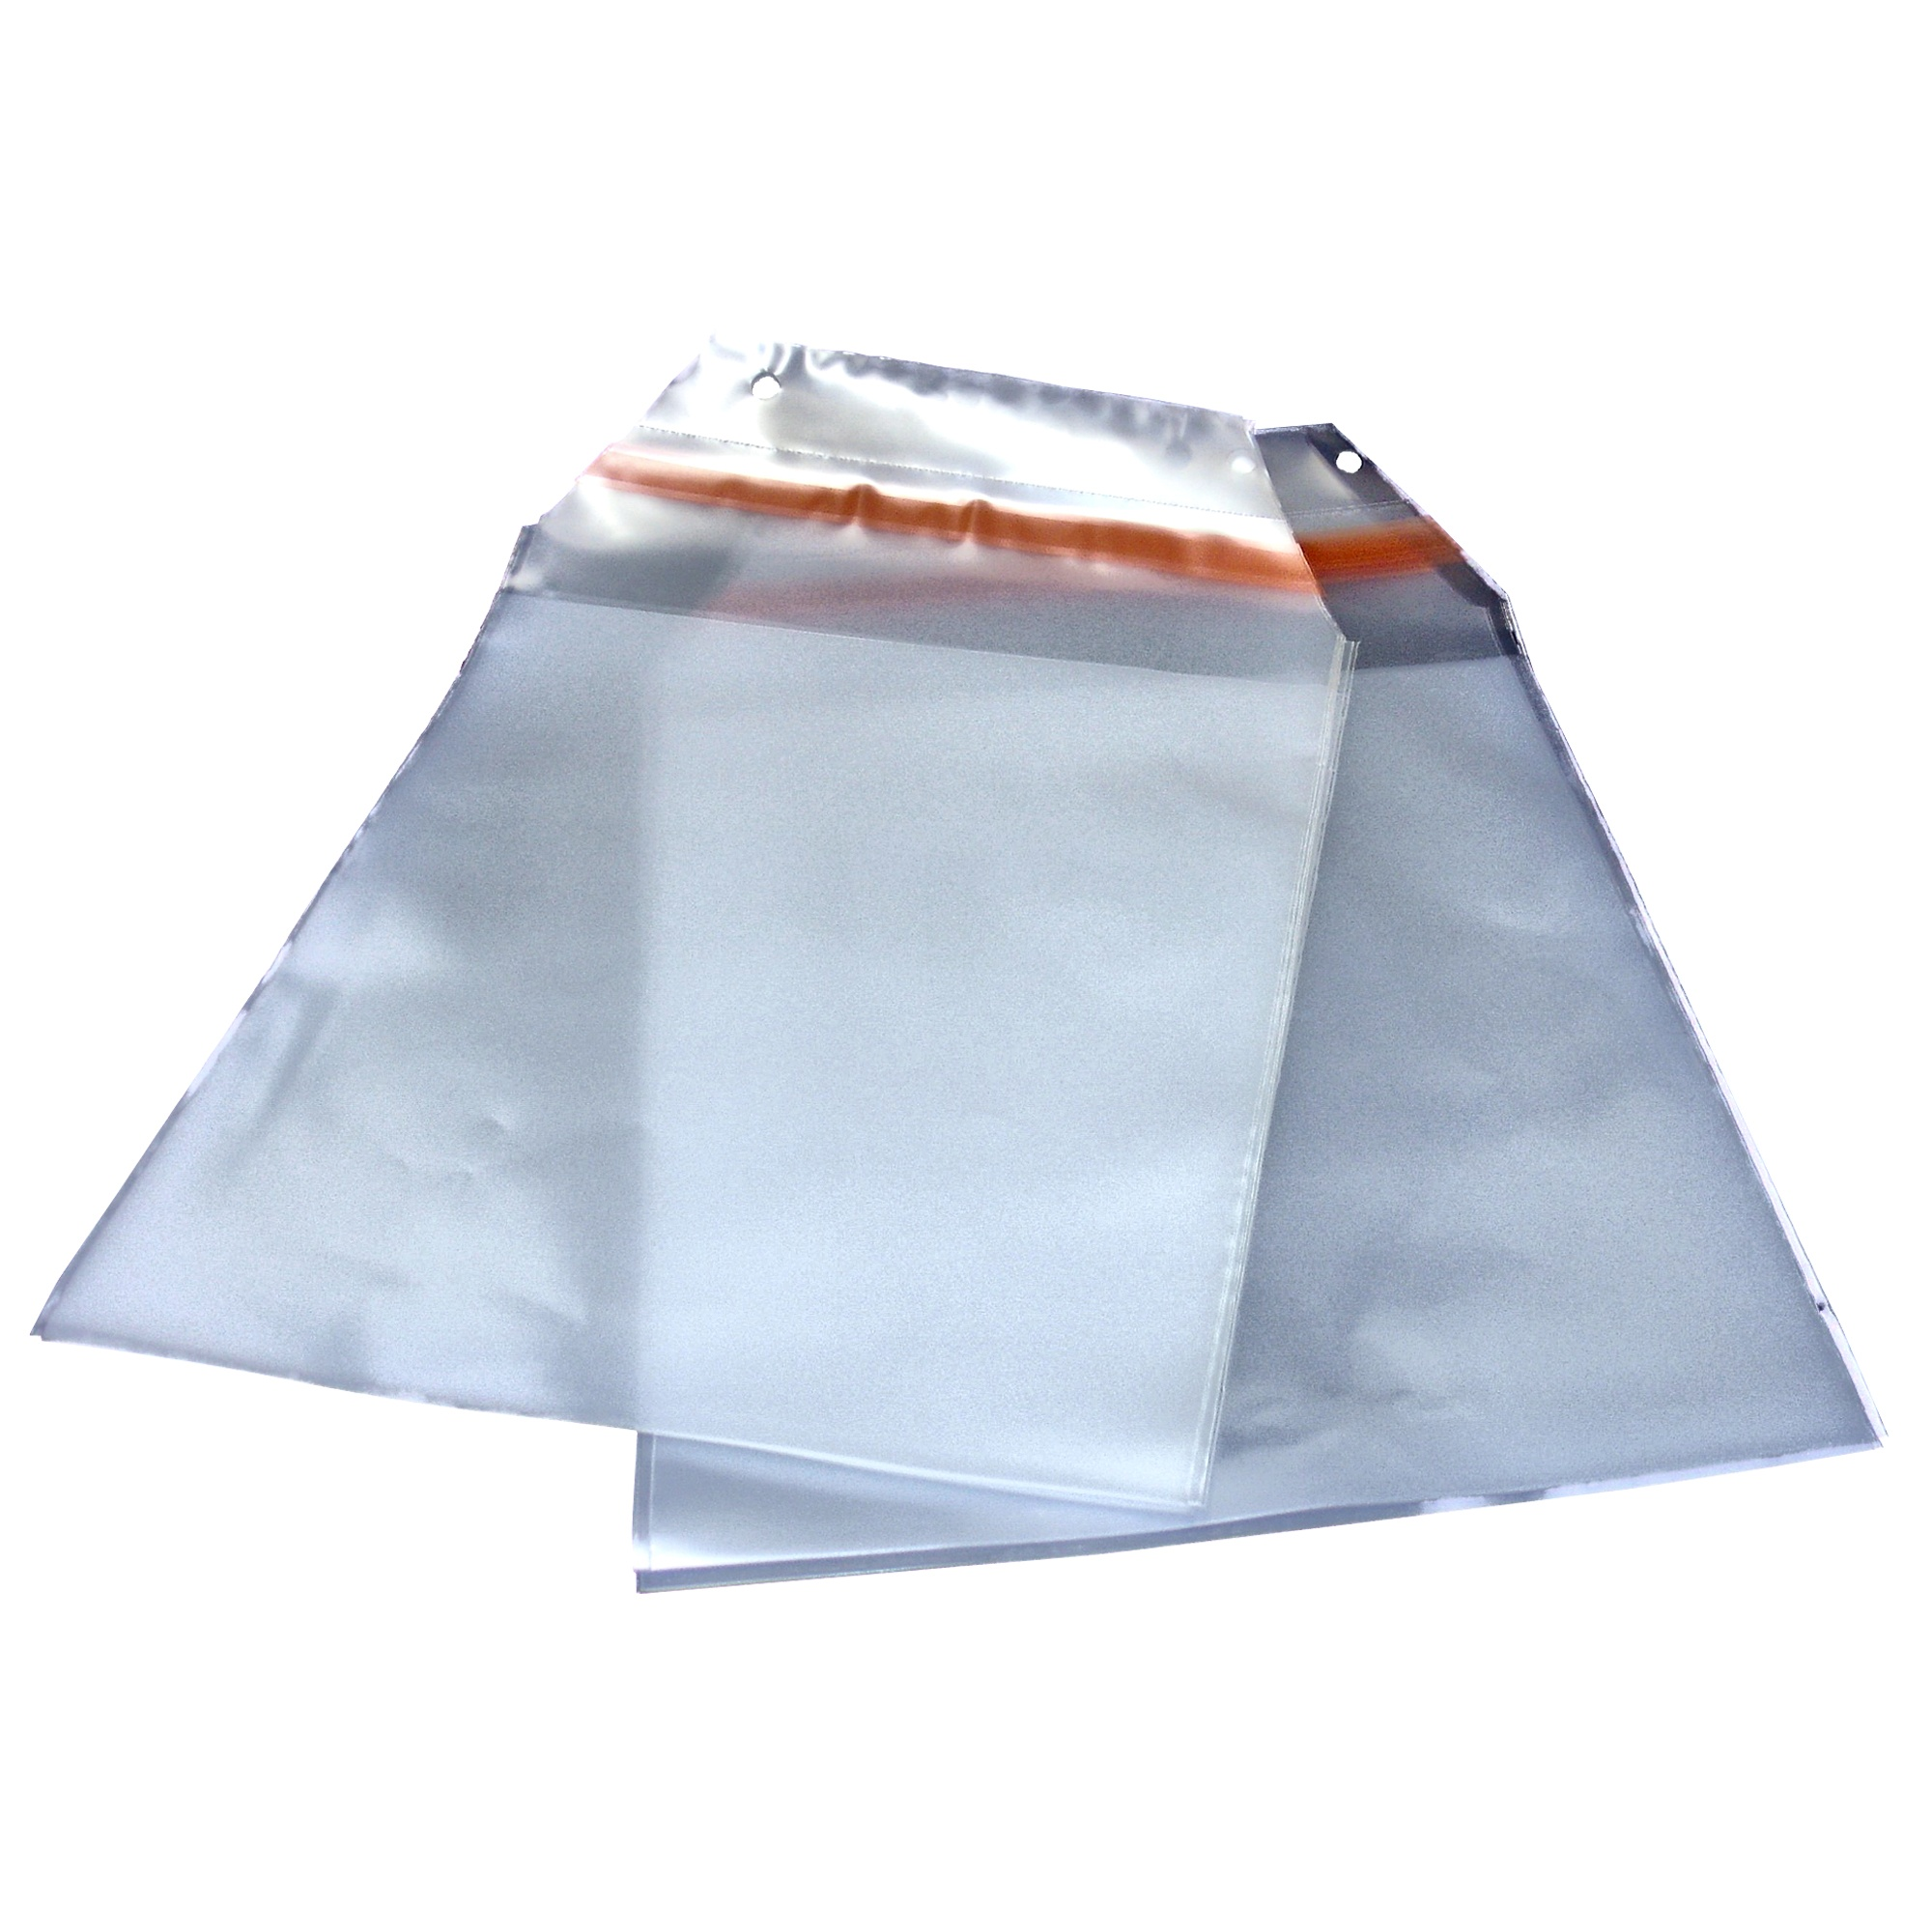 Dustproof bags Image